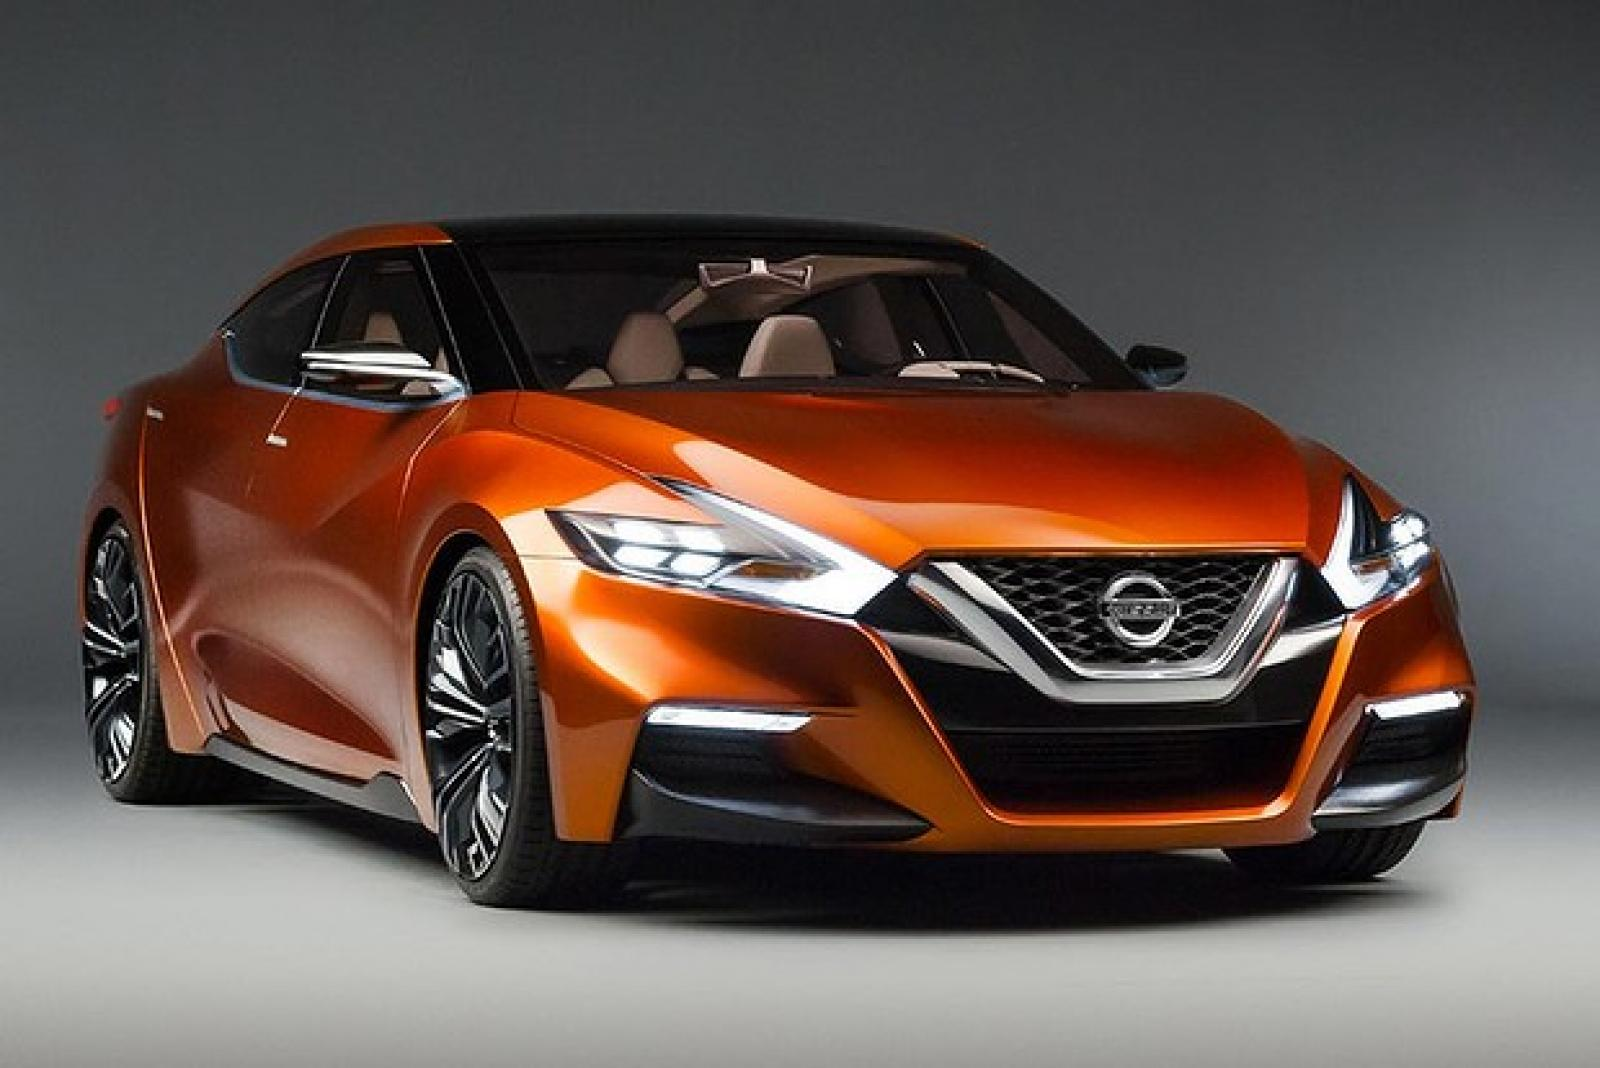 new car releases 2016 usaBest New Cars 2016  The Car Database